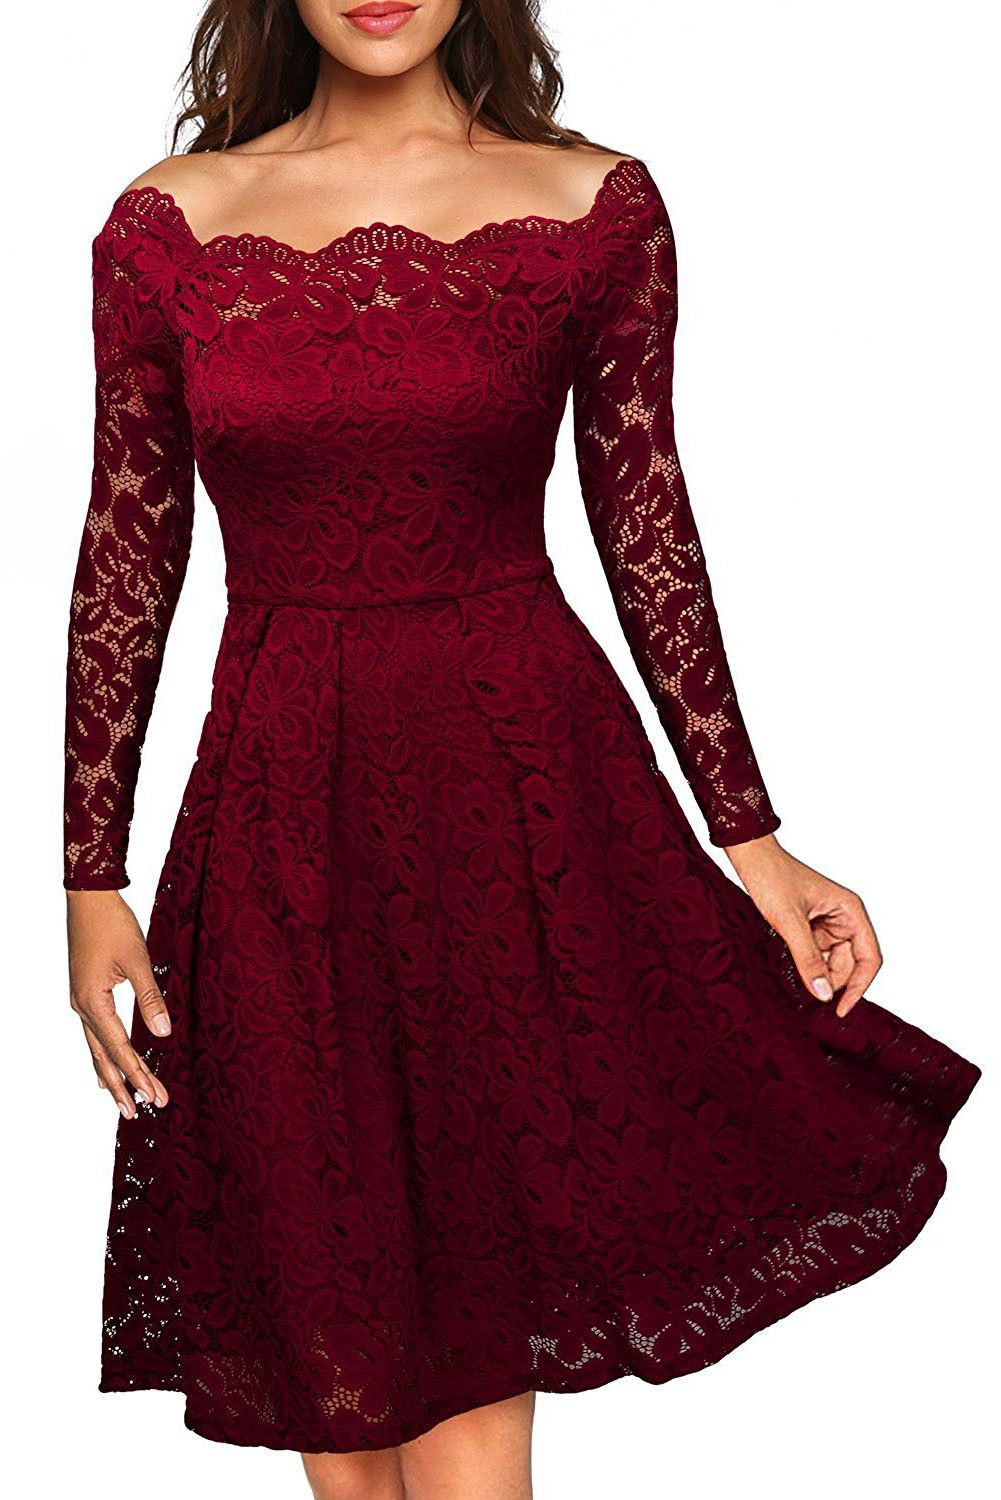 6ef0576a357 Robes Patineuses Rouges Dentelle Manches Longues Plisse Pas Cher  www.modebuy.com  Modebuy  Modebuy  Rouge  me  femmes  gros